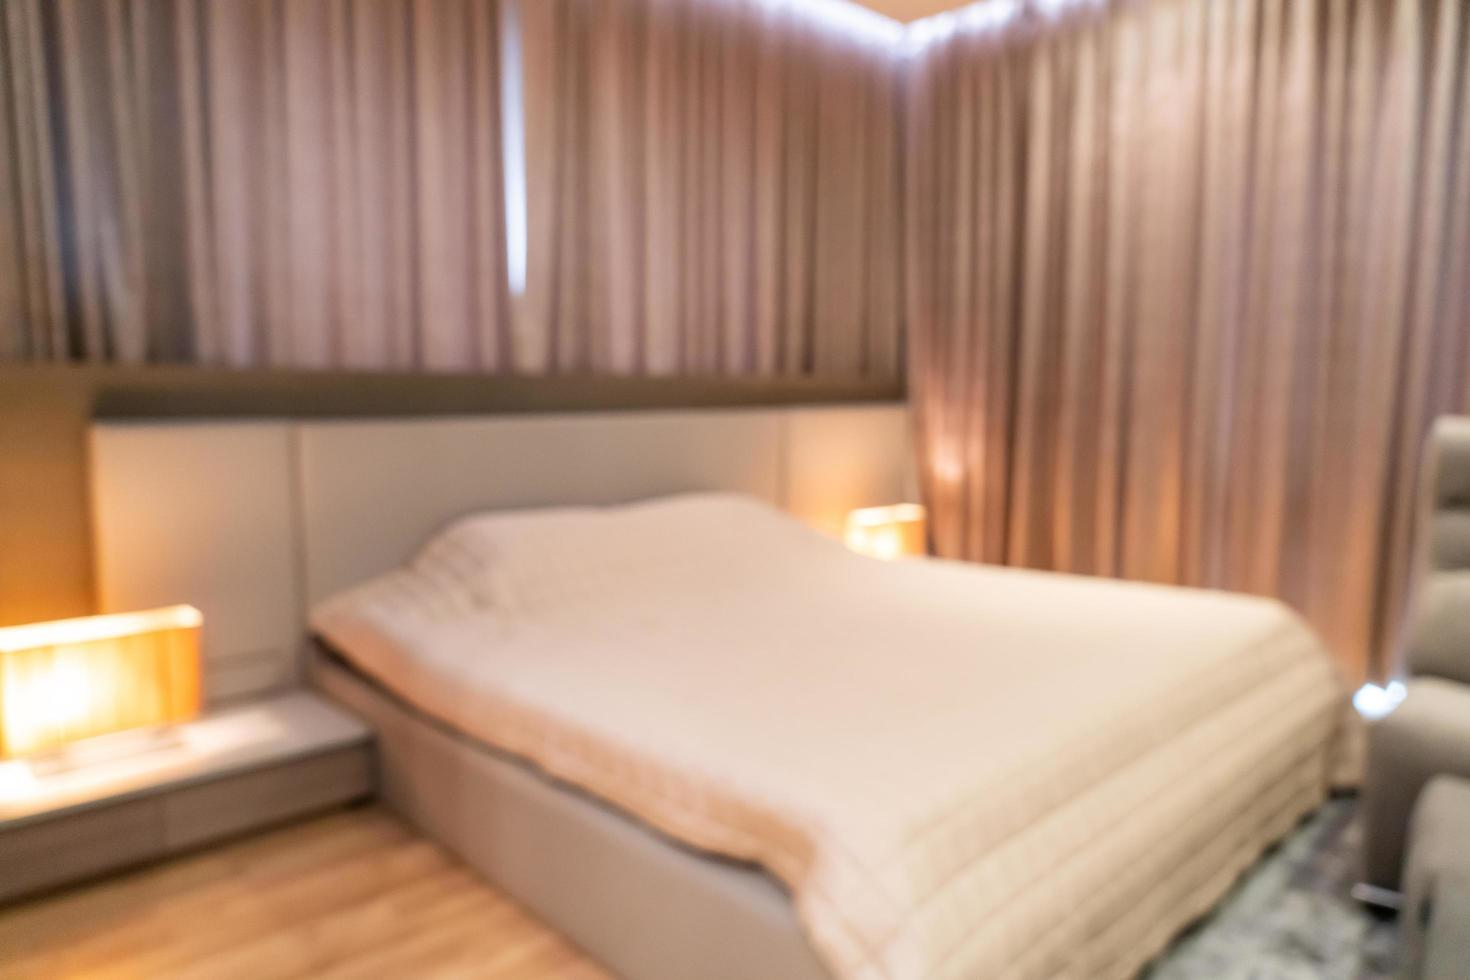 Abstract blur bedroom interior for background photo